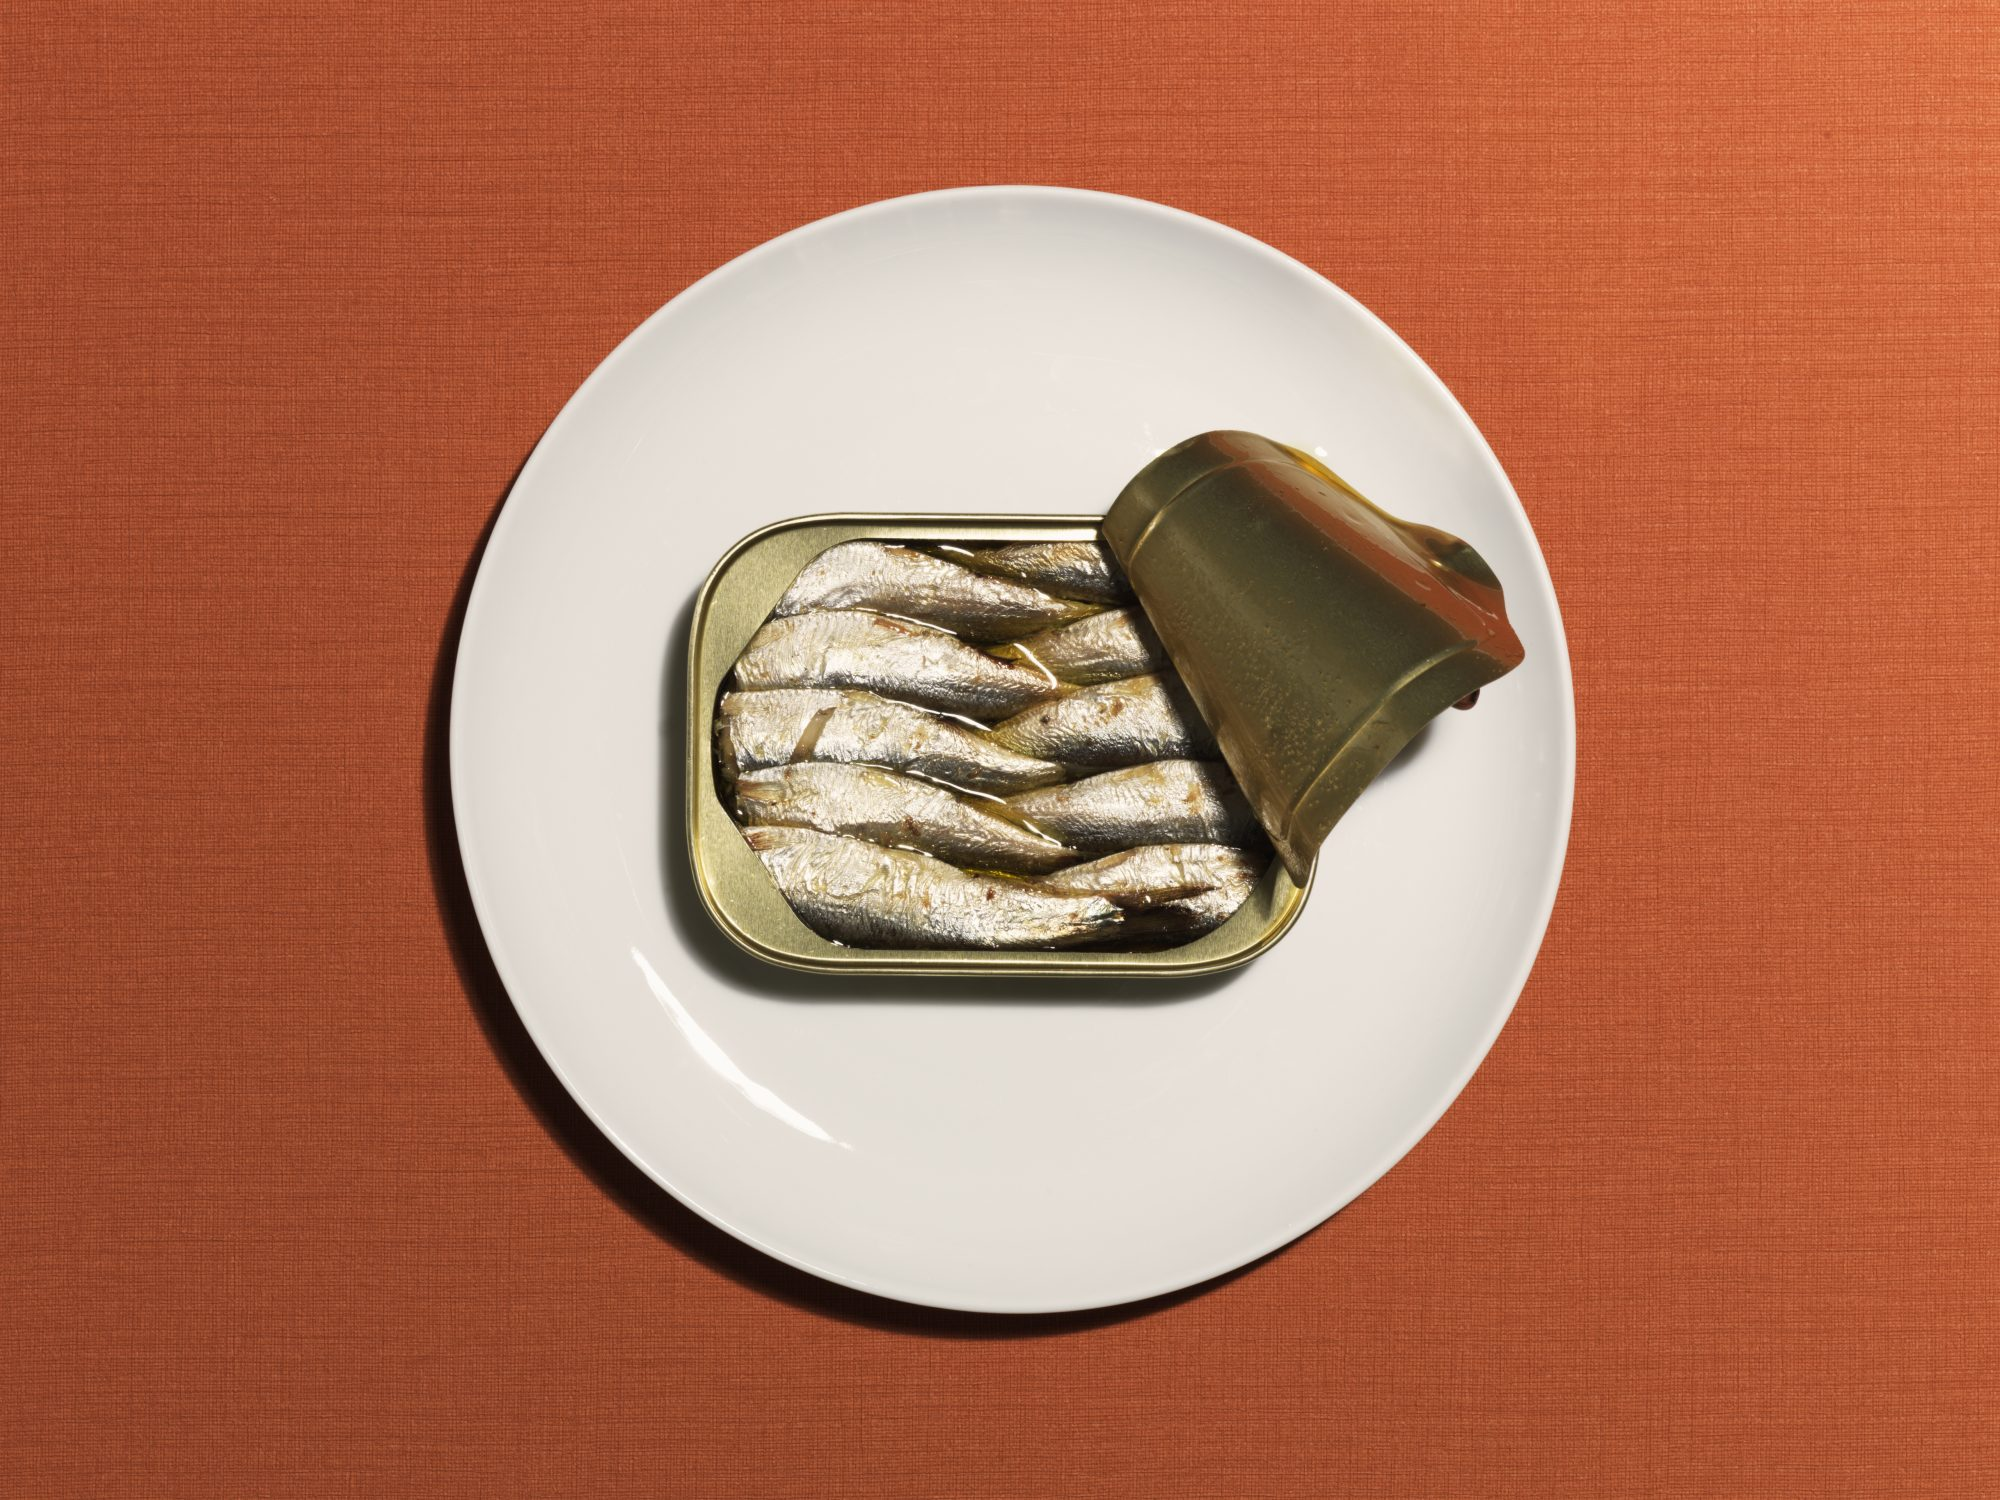 How to Use That Opened Can of Anchovies